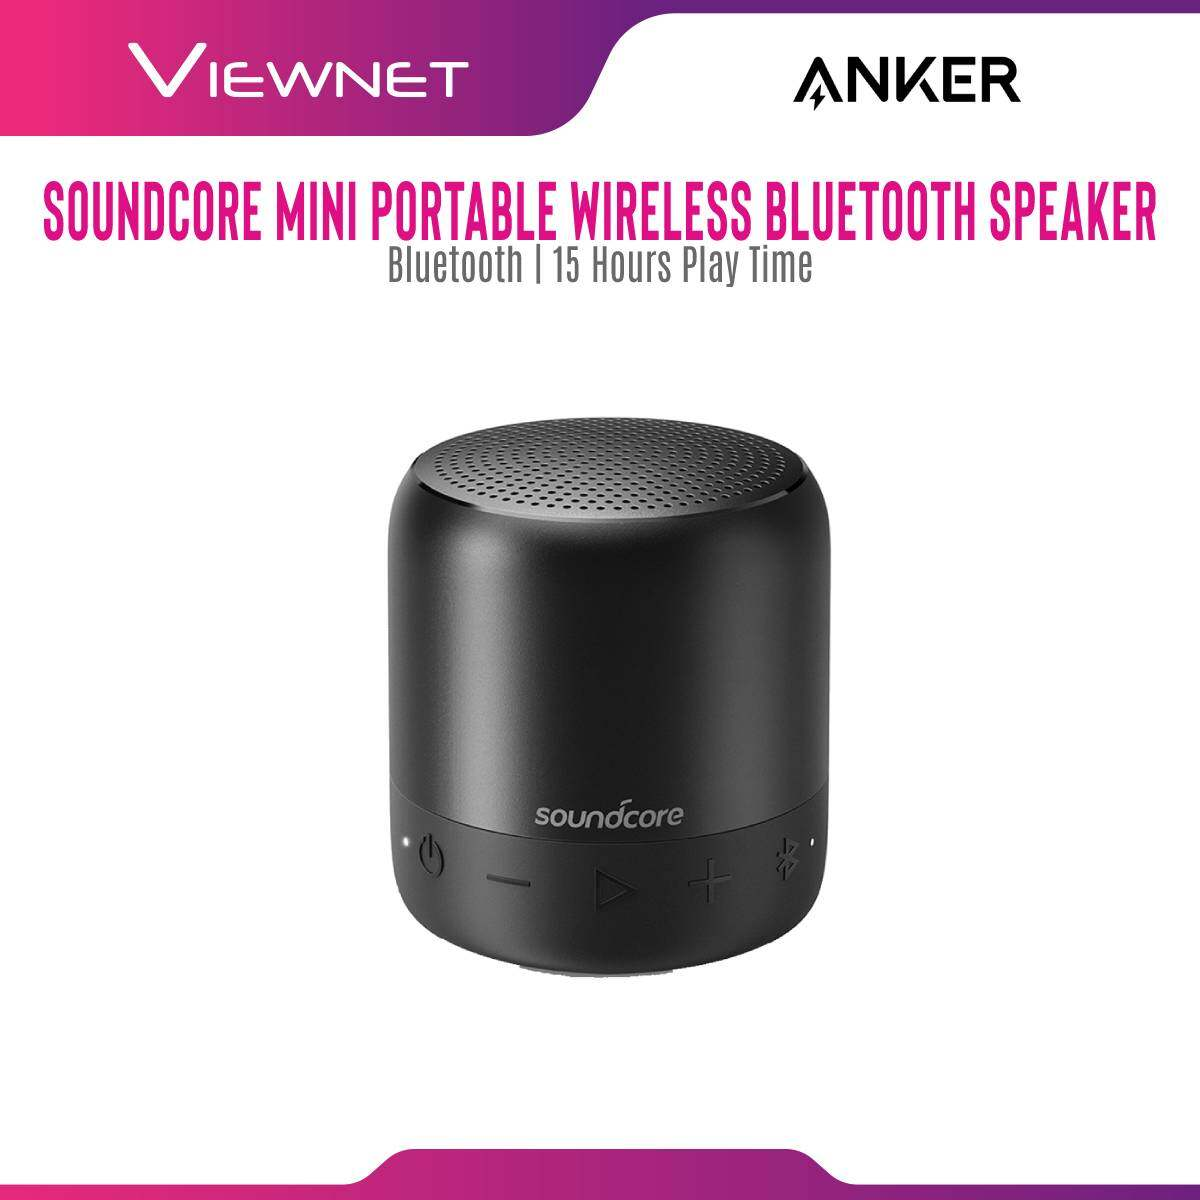 Anker Portable Speaker SoundCore Mini A3101 with Bluetooth 4.0 Connection, 15 Hours Playing Time, SD Micro Support, AUX-In Jack, FM Radio